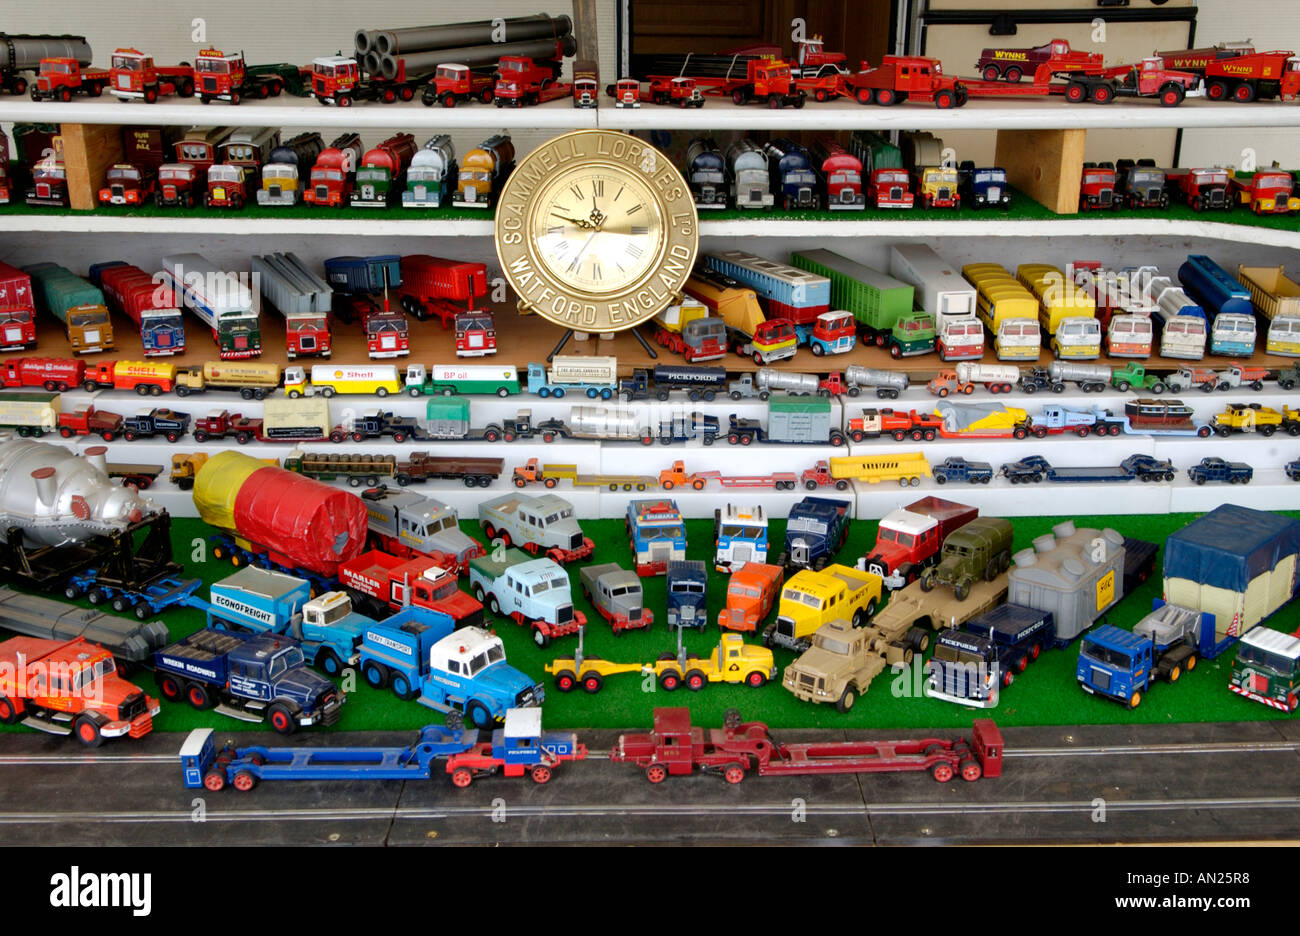 Collection of Scammell toy lorries - Stock Image